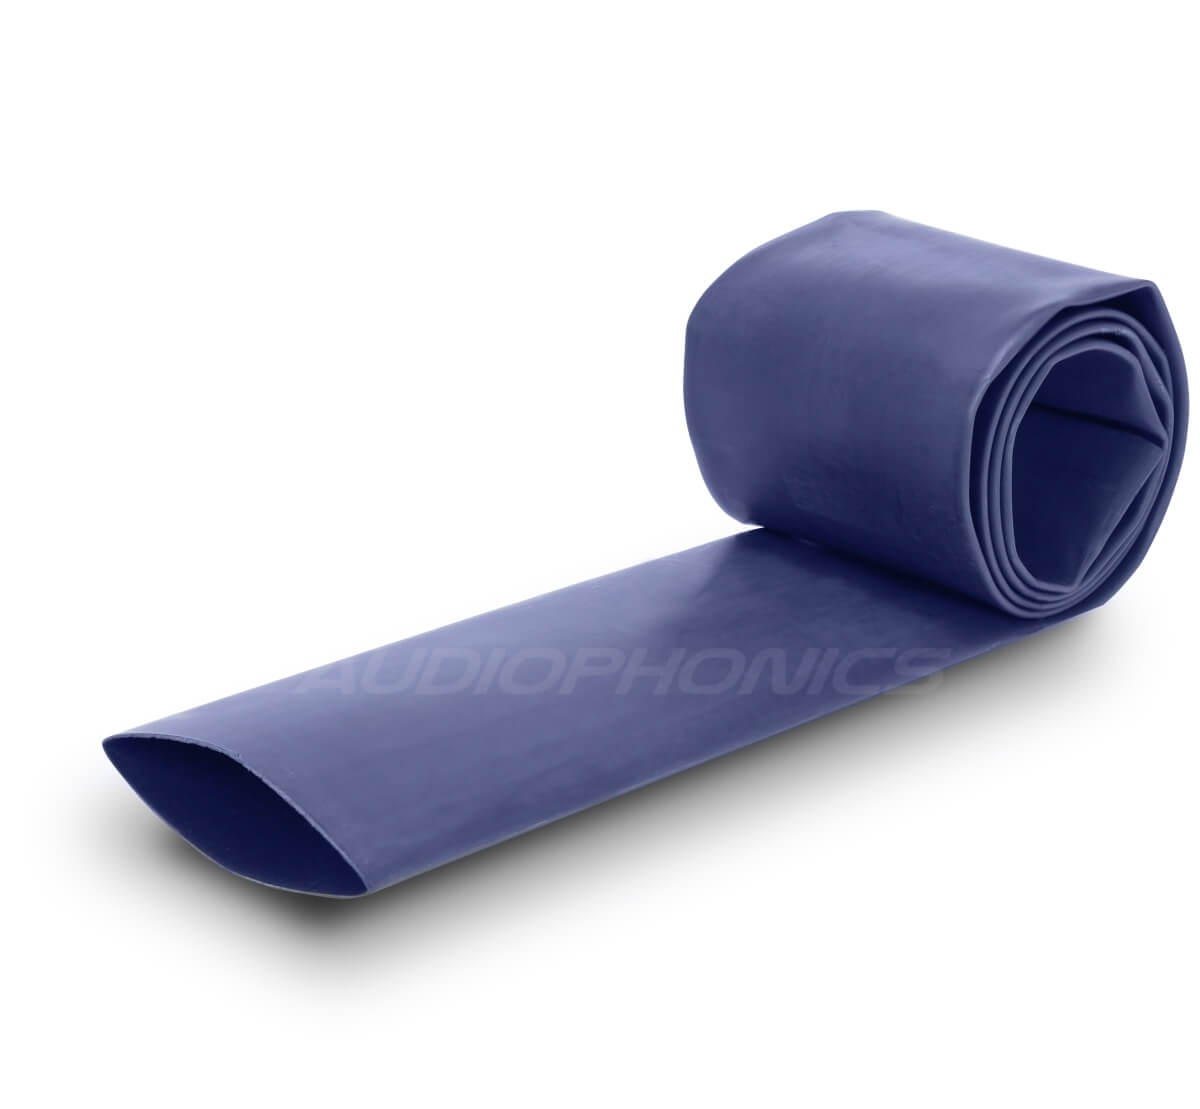 Gaine Thermo Rétractable 2:1 Ø12mm Longueur 1m (Bleue)